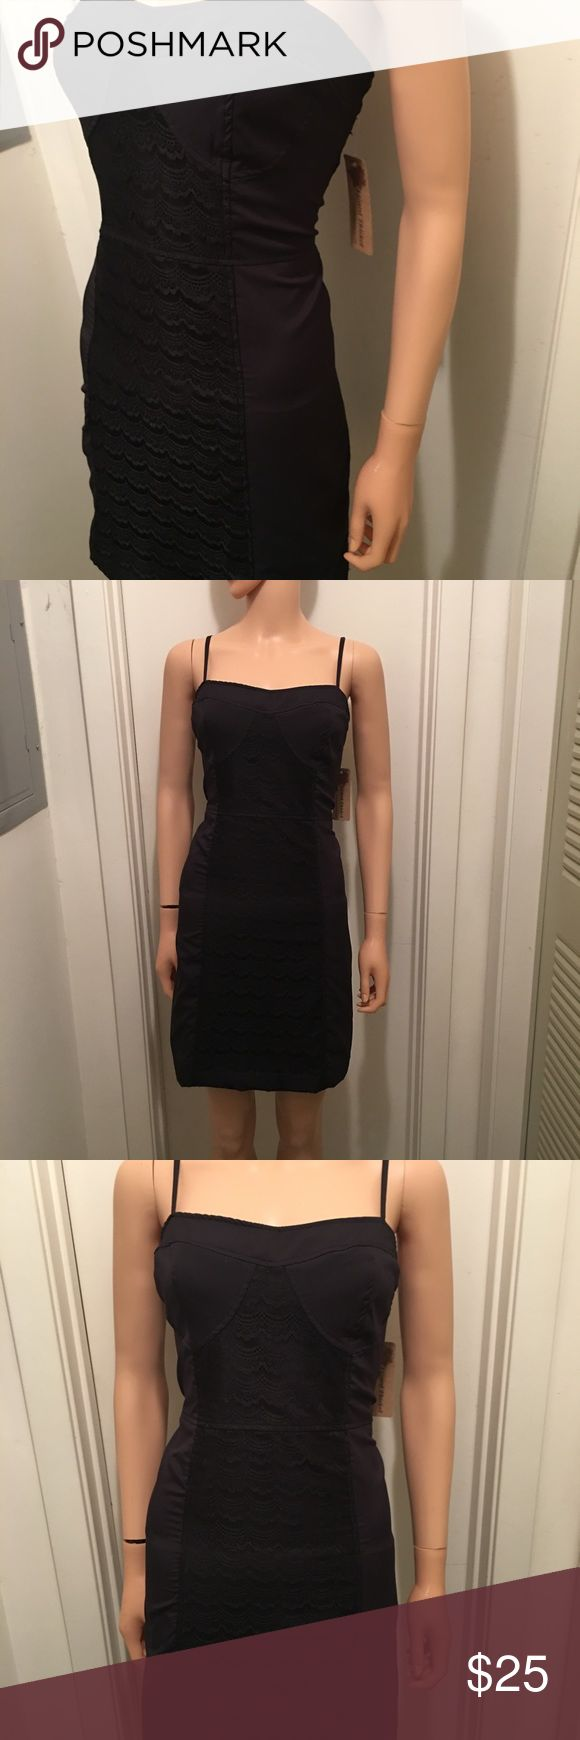 Anthropologie 'Tulle' ~ Sexy Little Black Dress The item you are considering is an Anthropologie 'Tulle' little black dress. NWT! Women's Sz Large. Tulle Dresses Midi